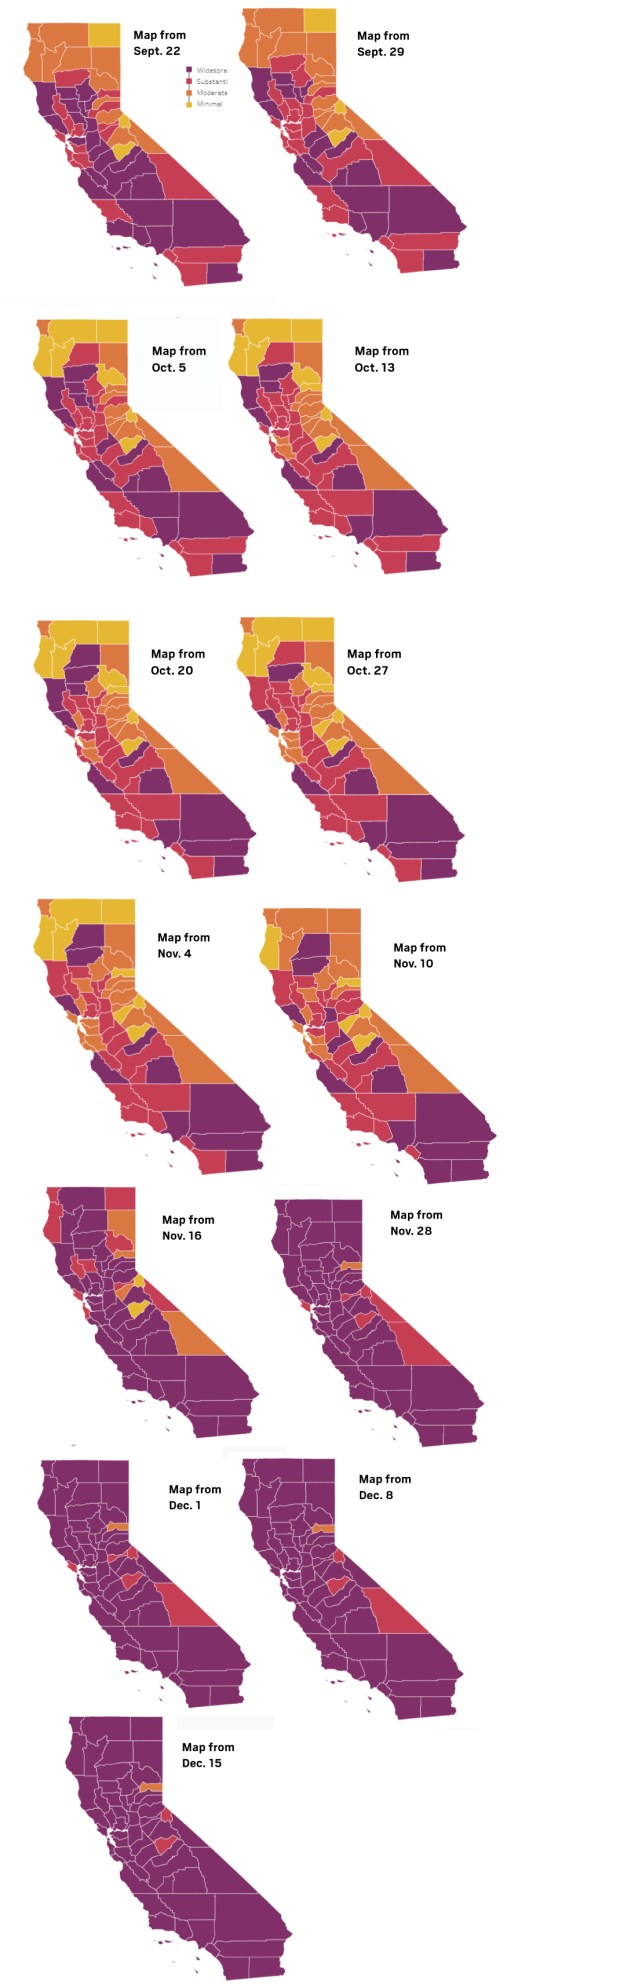 Coronavirus: Here's each county's tier assignment and where stay-at-home orders are in place on Dec. 15